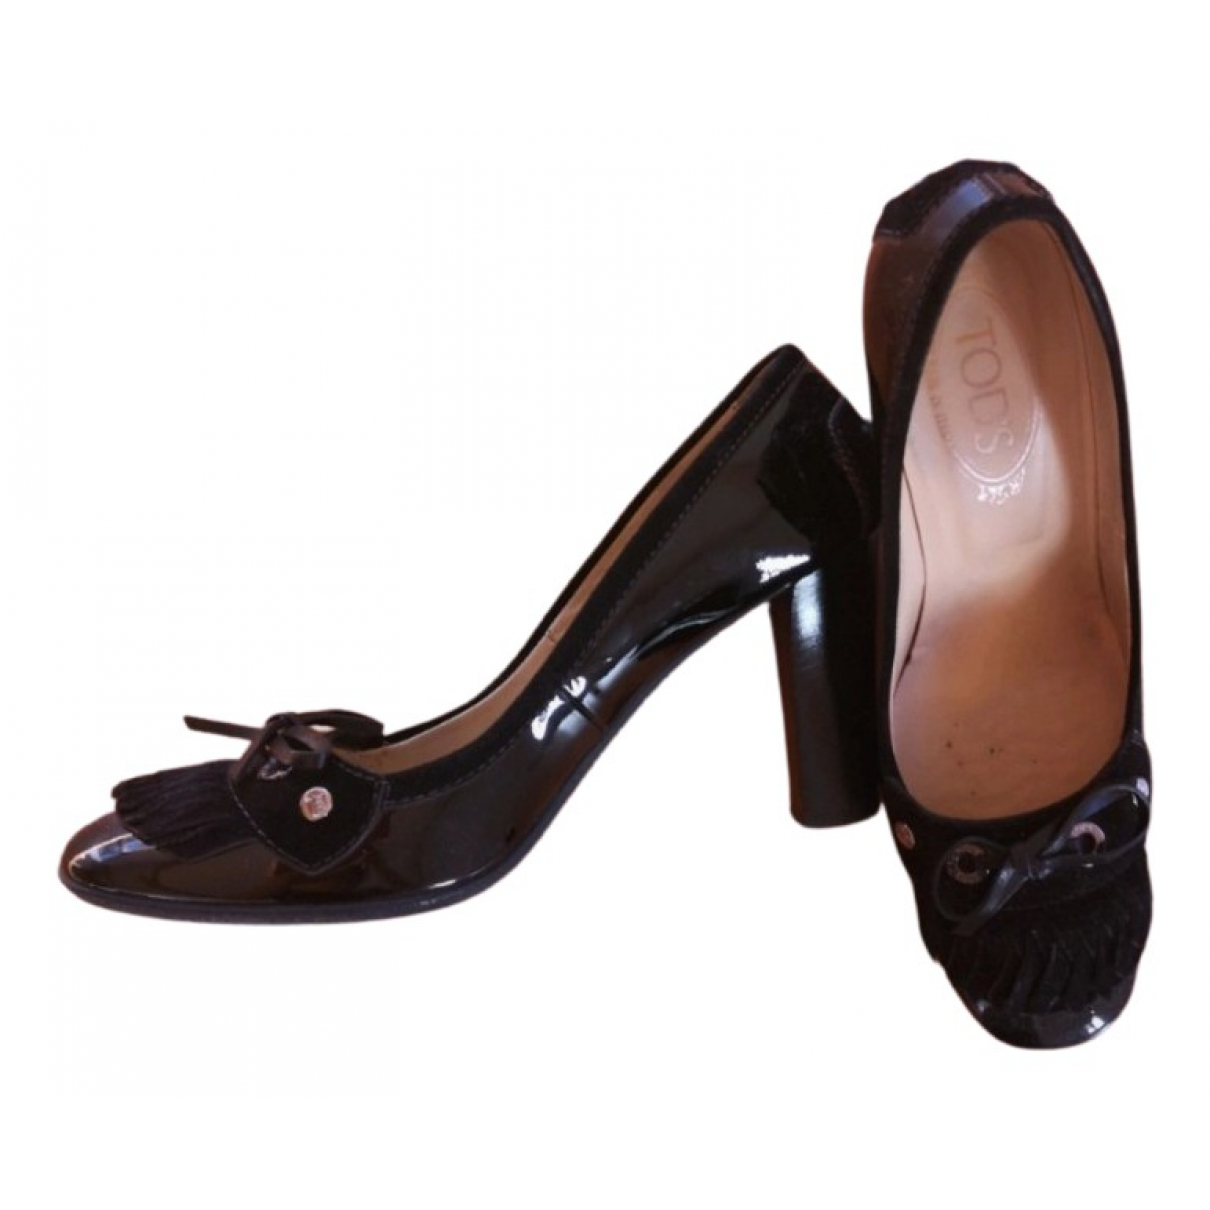 Tod's N Black Patent leather Heels for Women 38.5 EU